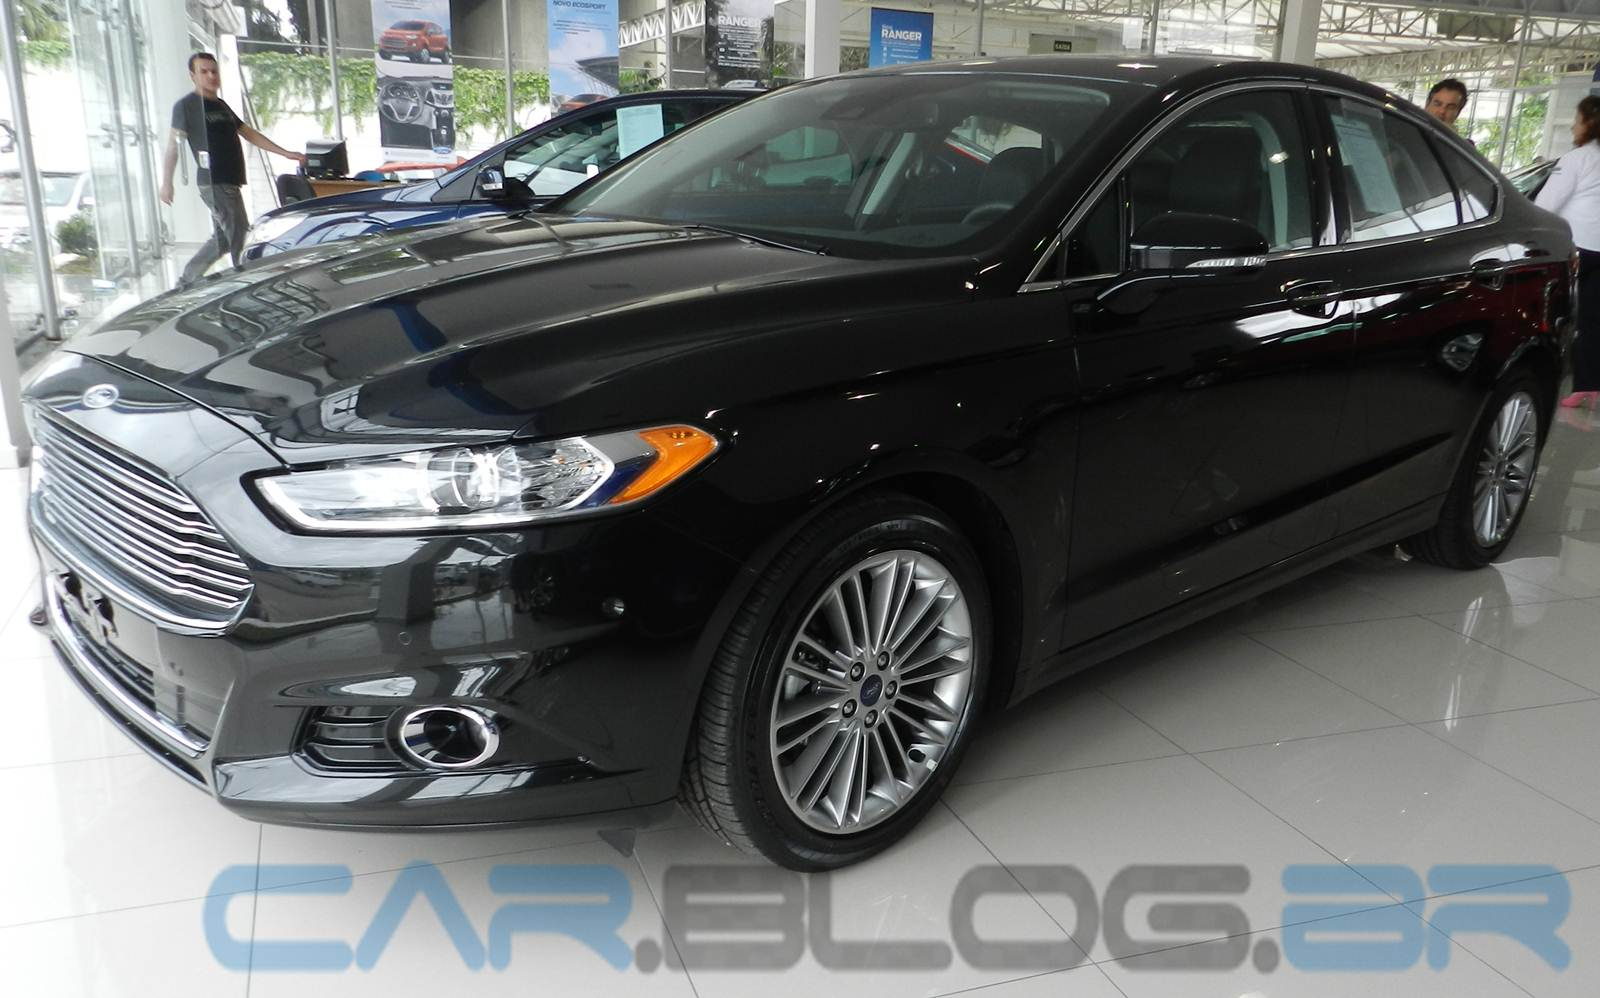 2013 Ford Fusion EcoBoost Turbo